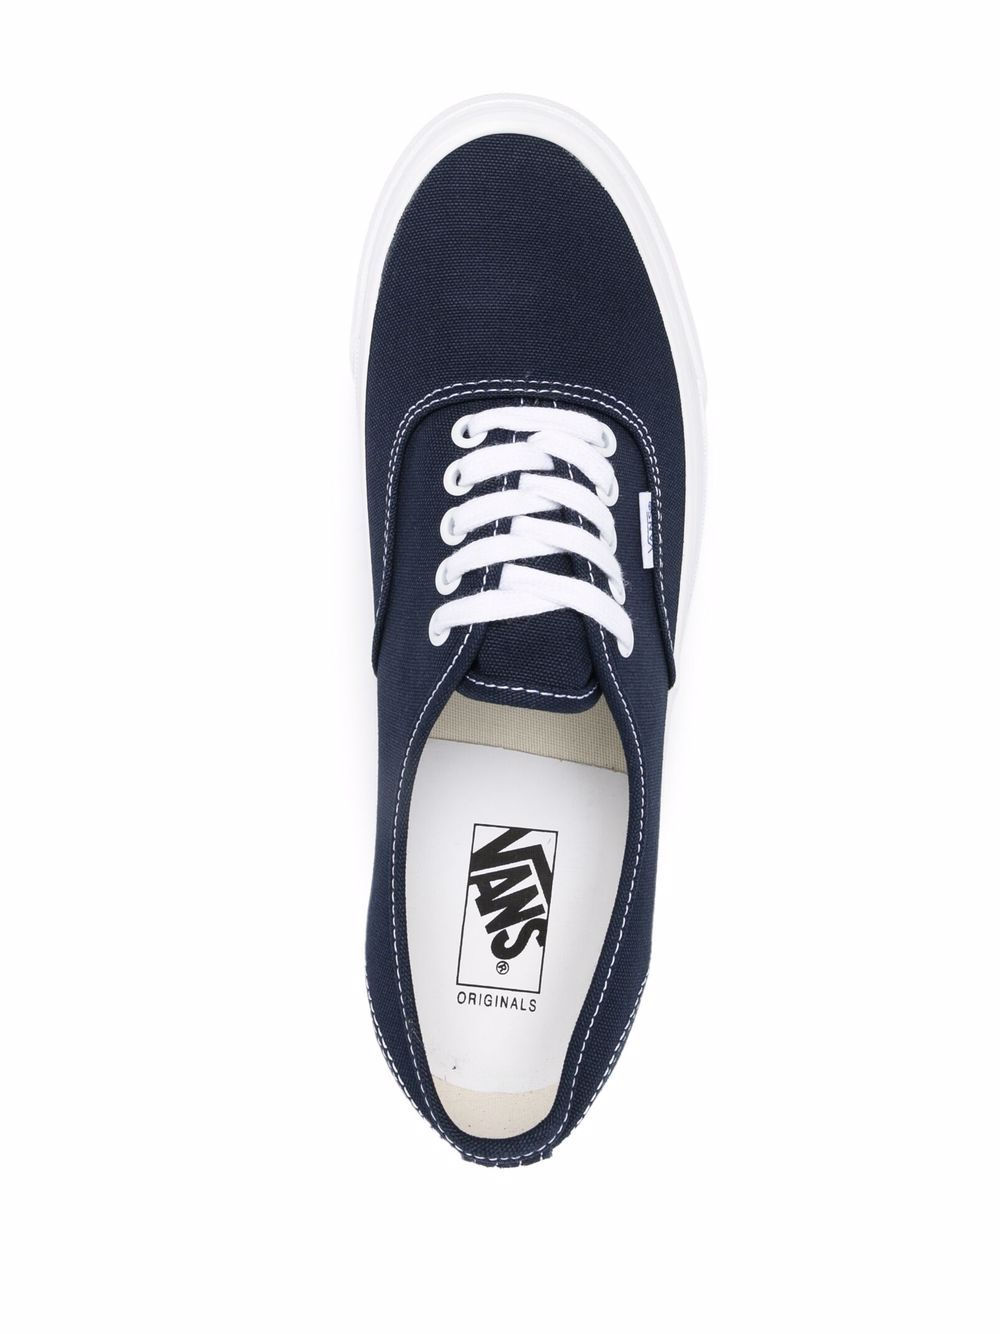 sneakers authentic lx og unisex blue in canvas VANS VAULT | Sneakers | VN0A4BV91X71